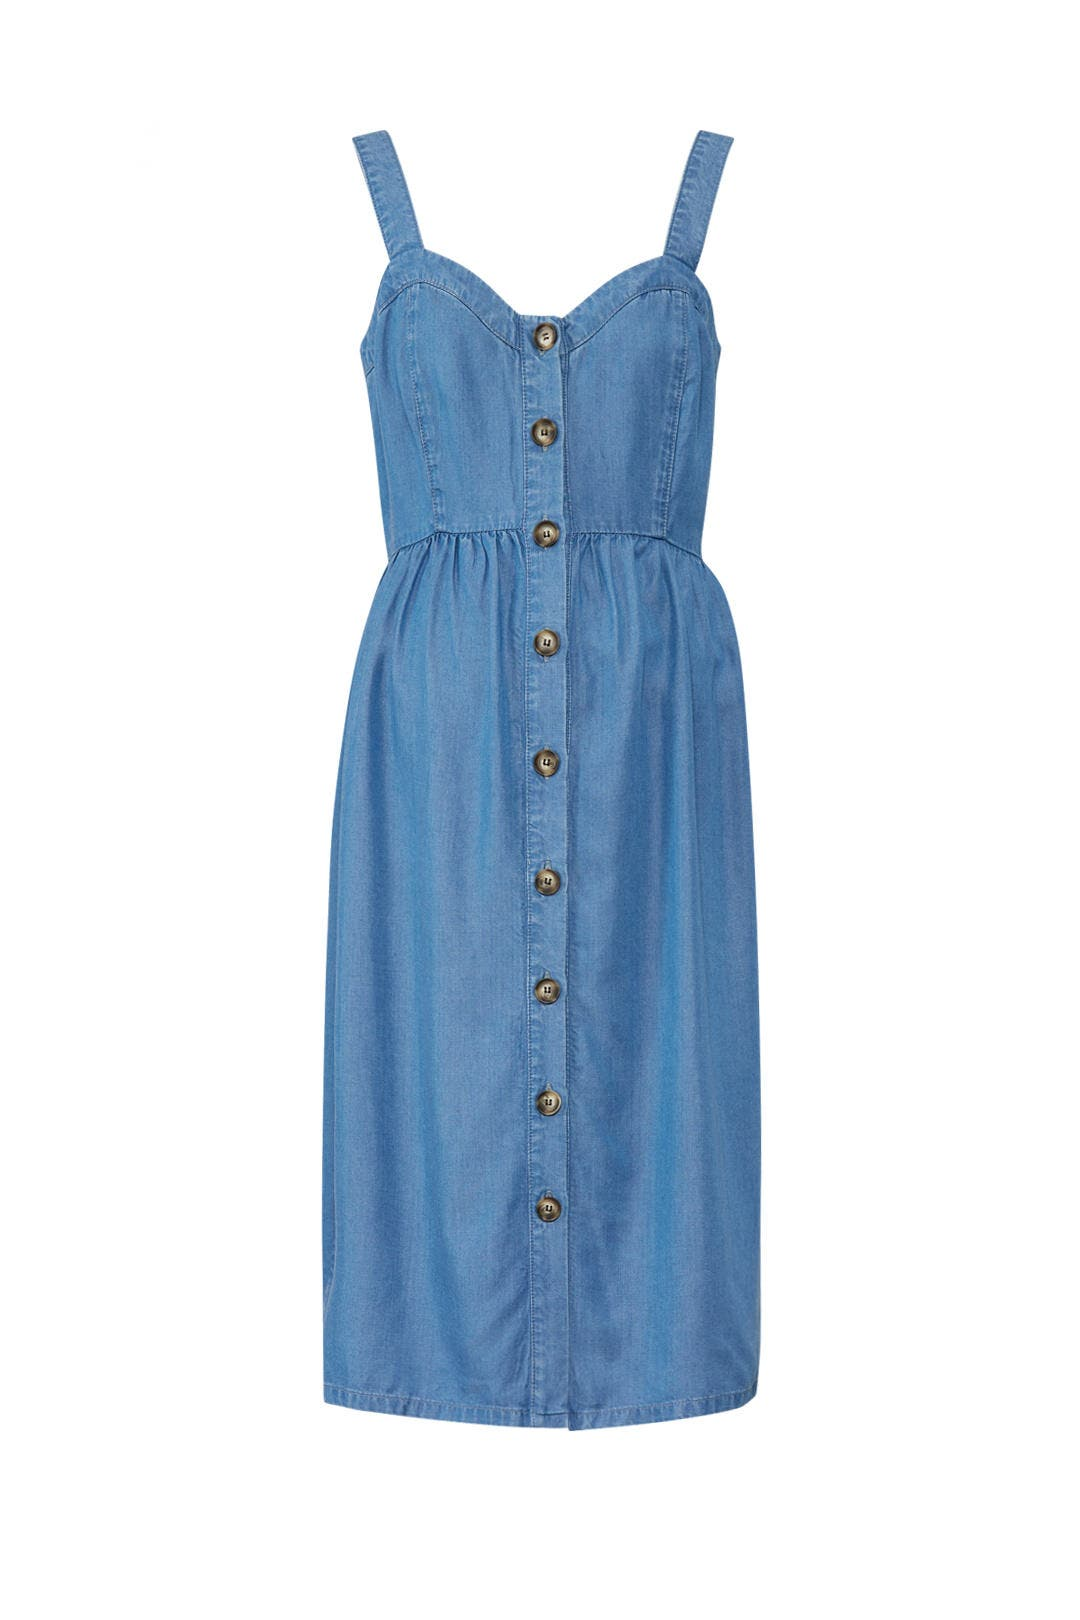 f068631c9393a Adelia Denim Maternity Dress by Seraphine for $30 | Rent the Runway